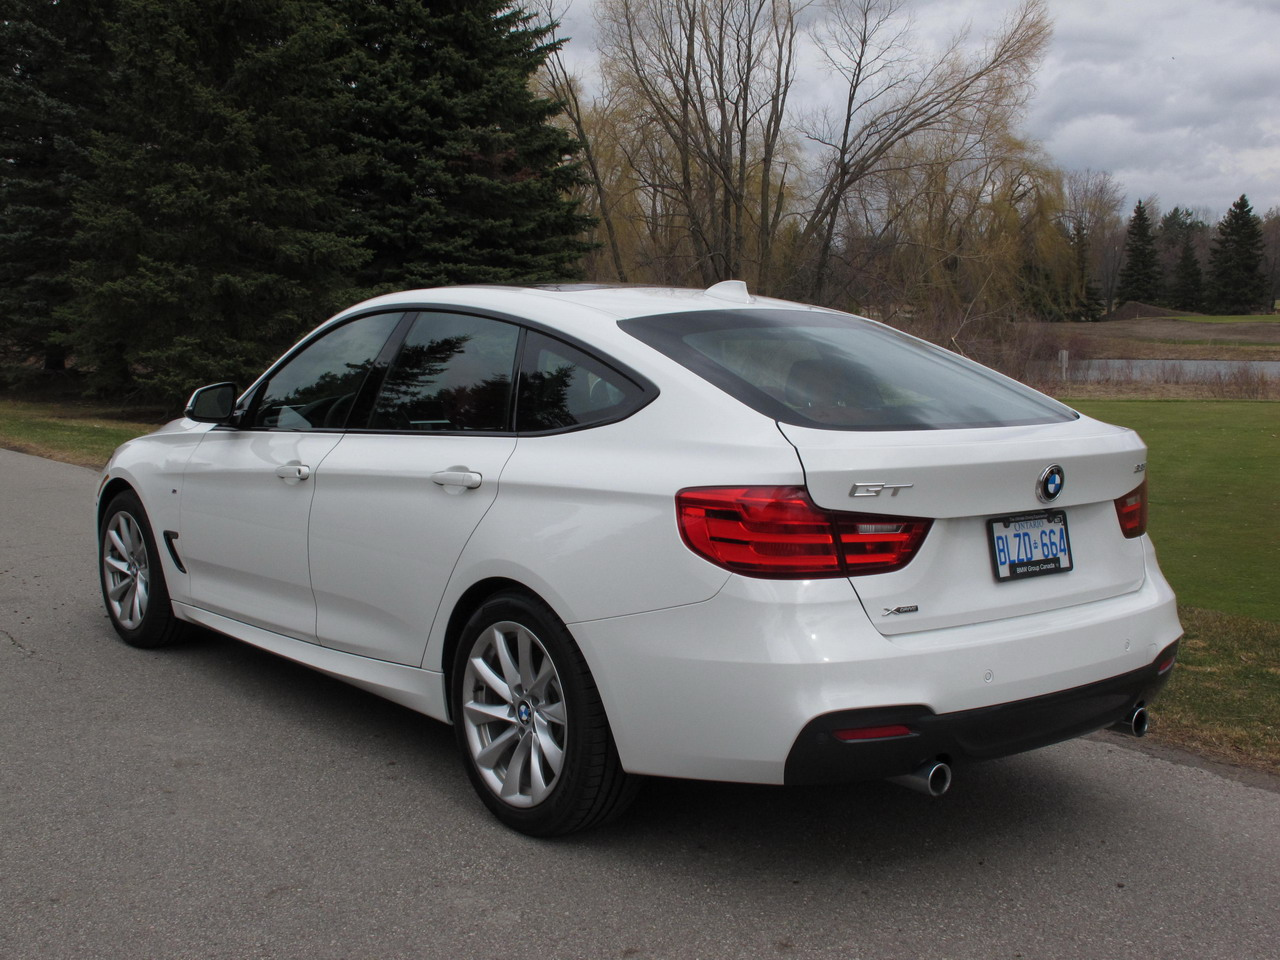 2014 bmw 335i gt xdrive review cars photos test drives and reviews canadian auto review. Black Bedroom Furniture Sets. Home Design Ideas